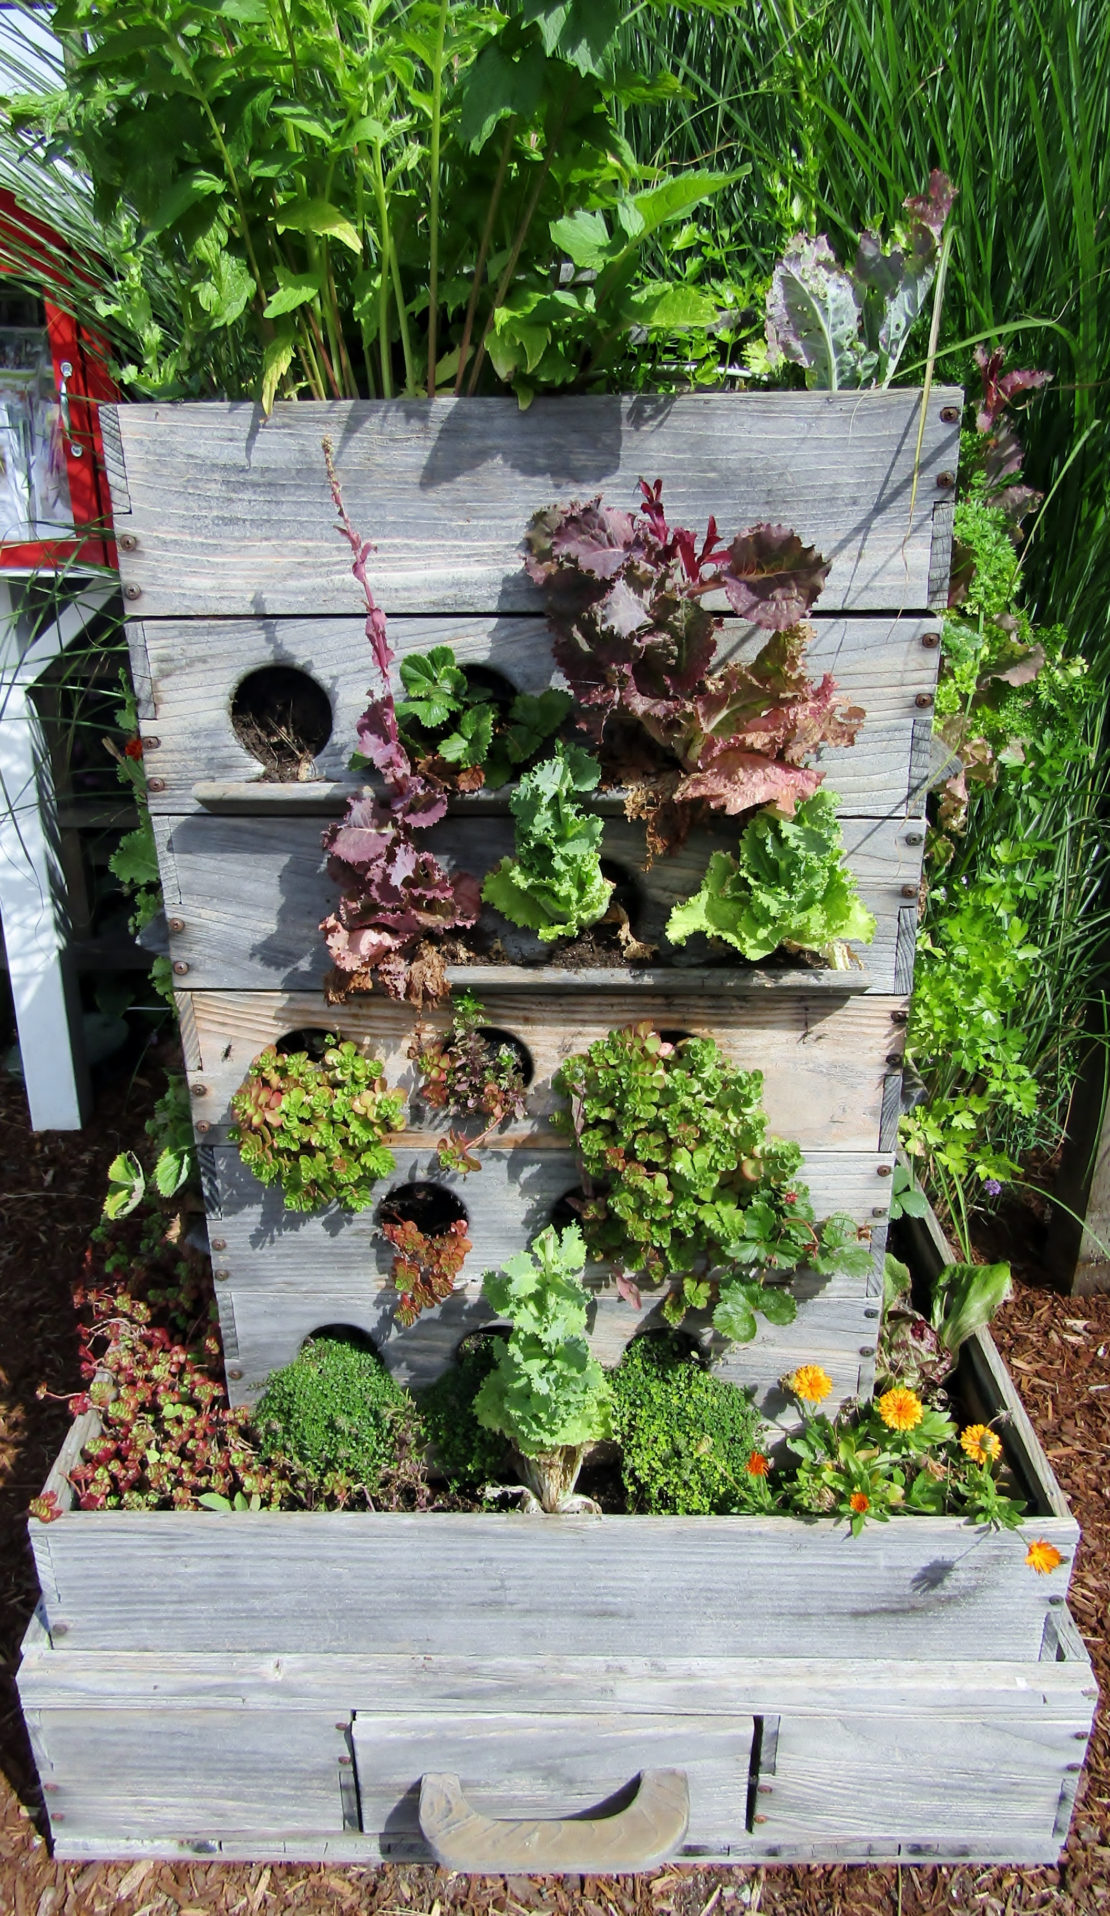 garden compost ideas - a wormery style compost bin made from repurposed wooden drawers